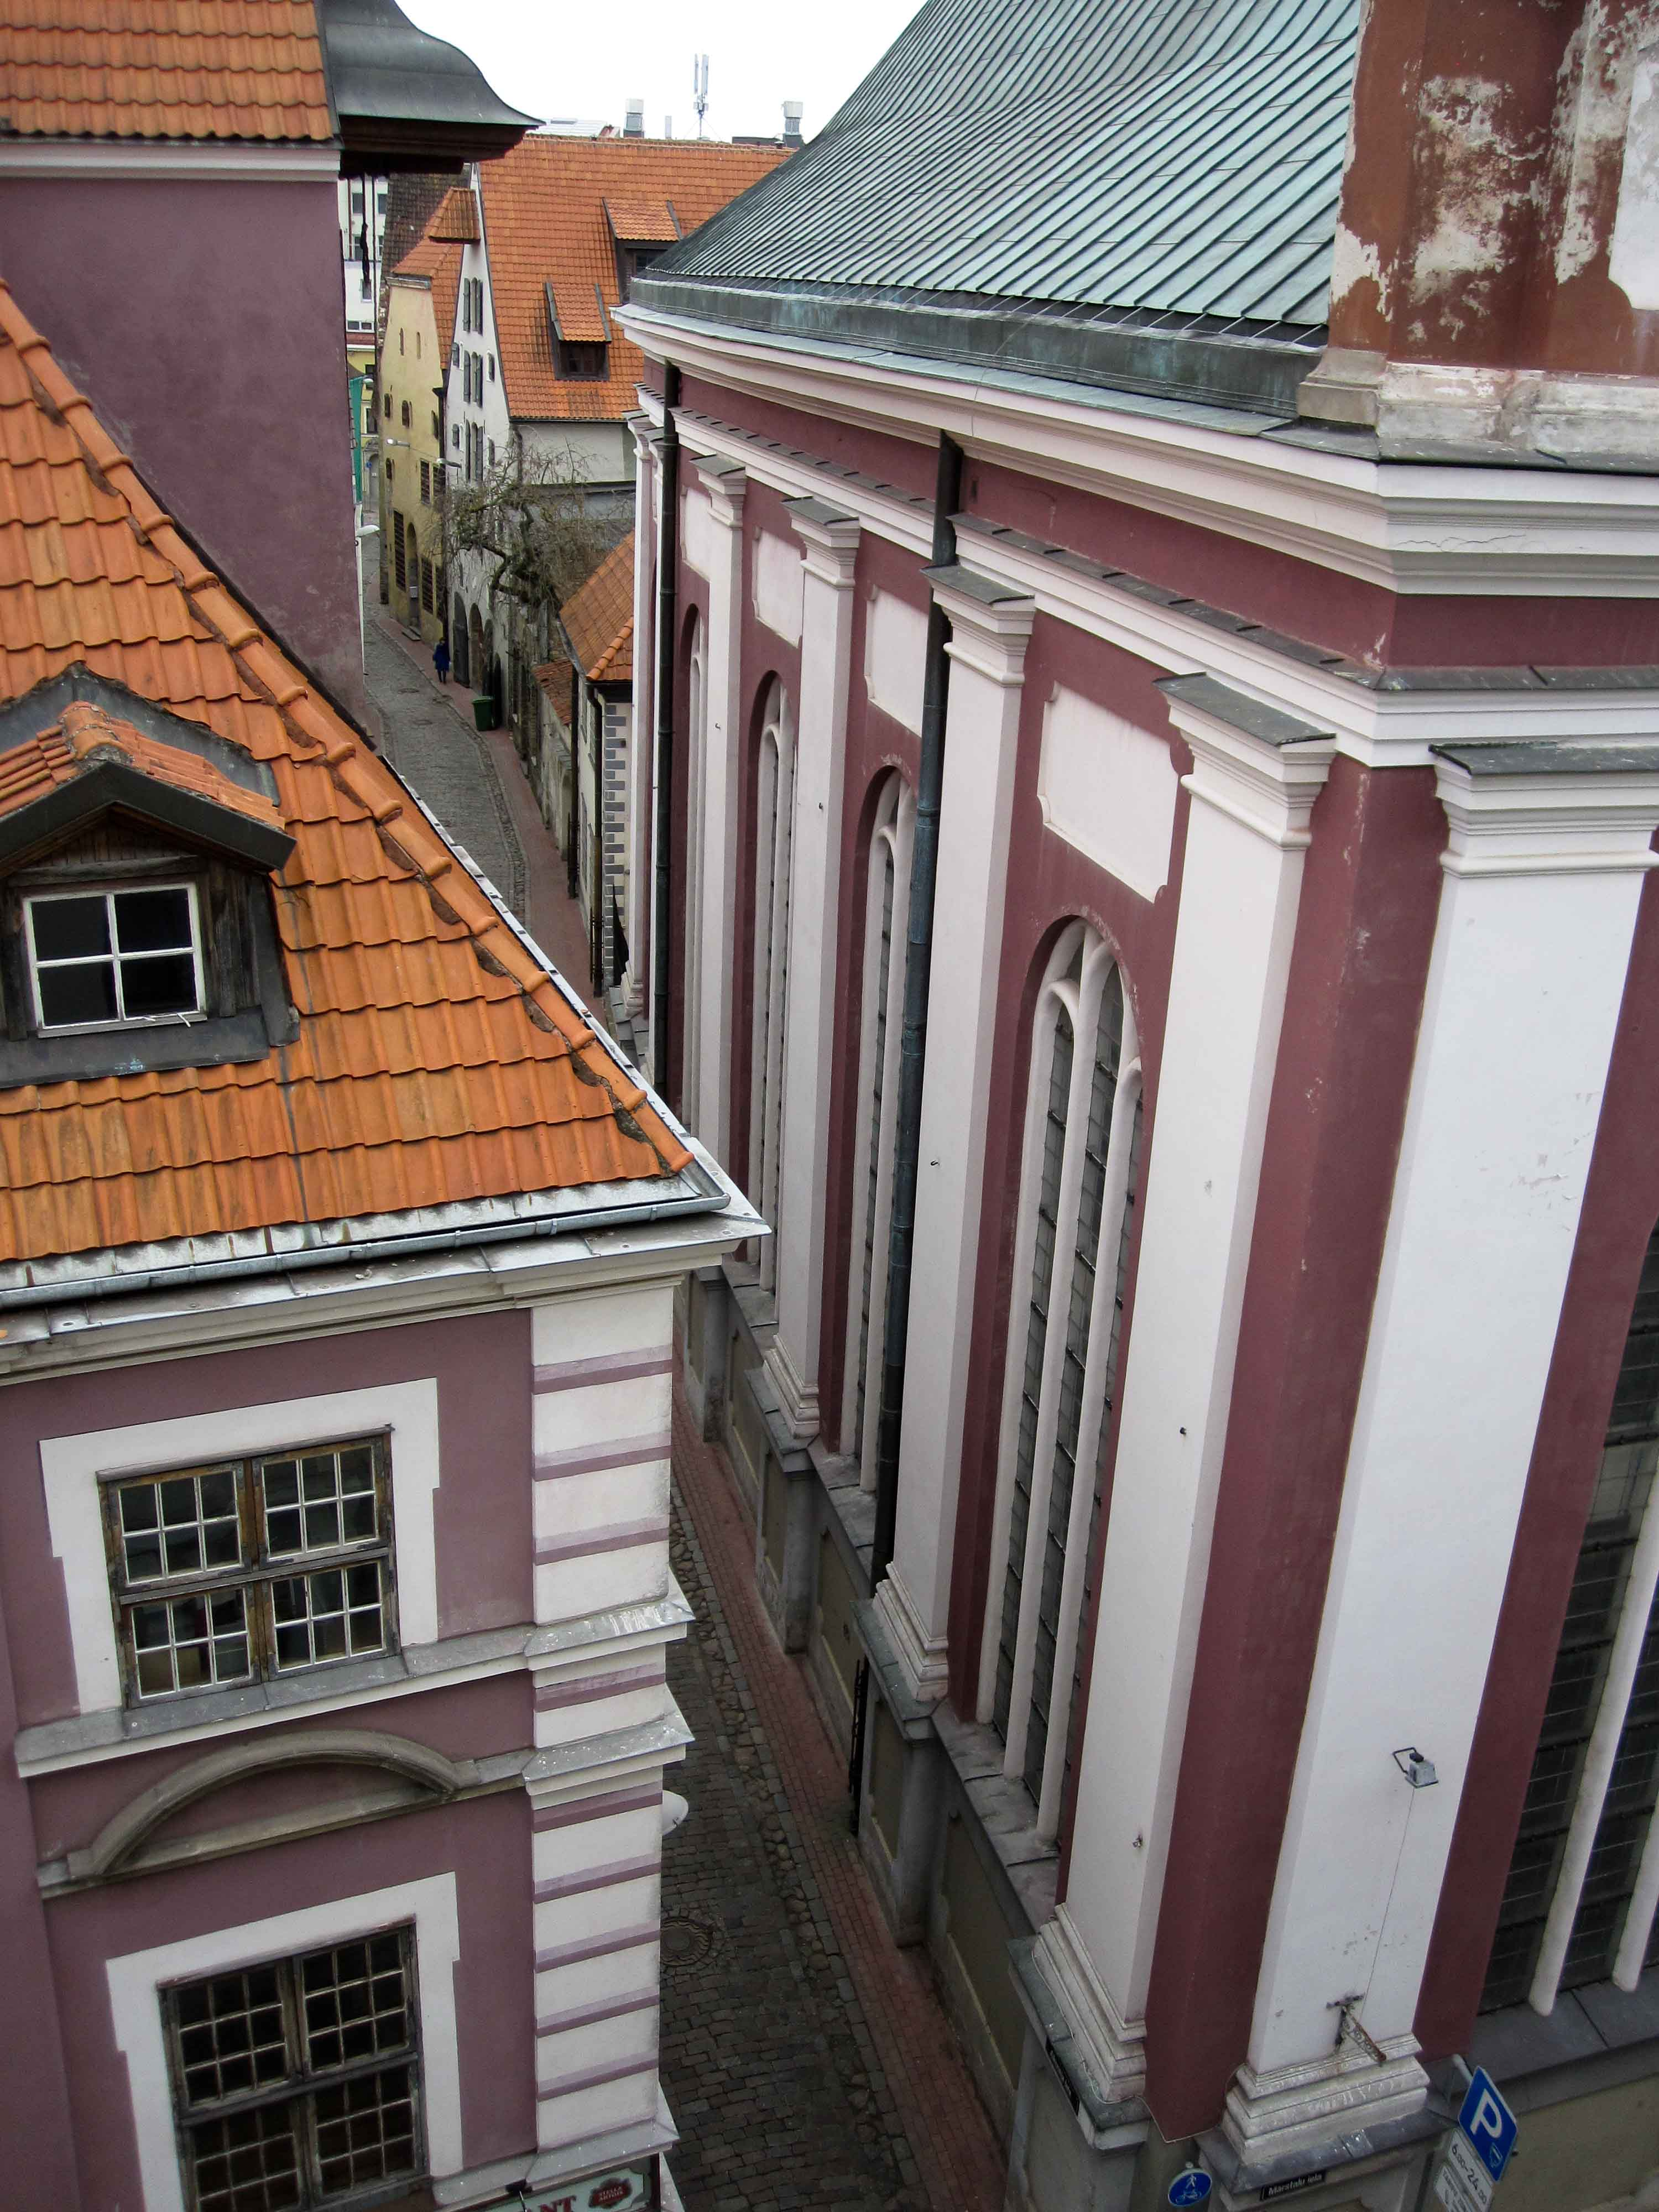 View from my window in the old city of Riga